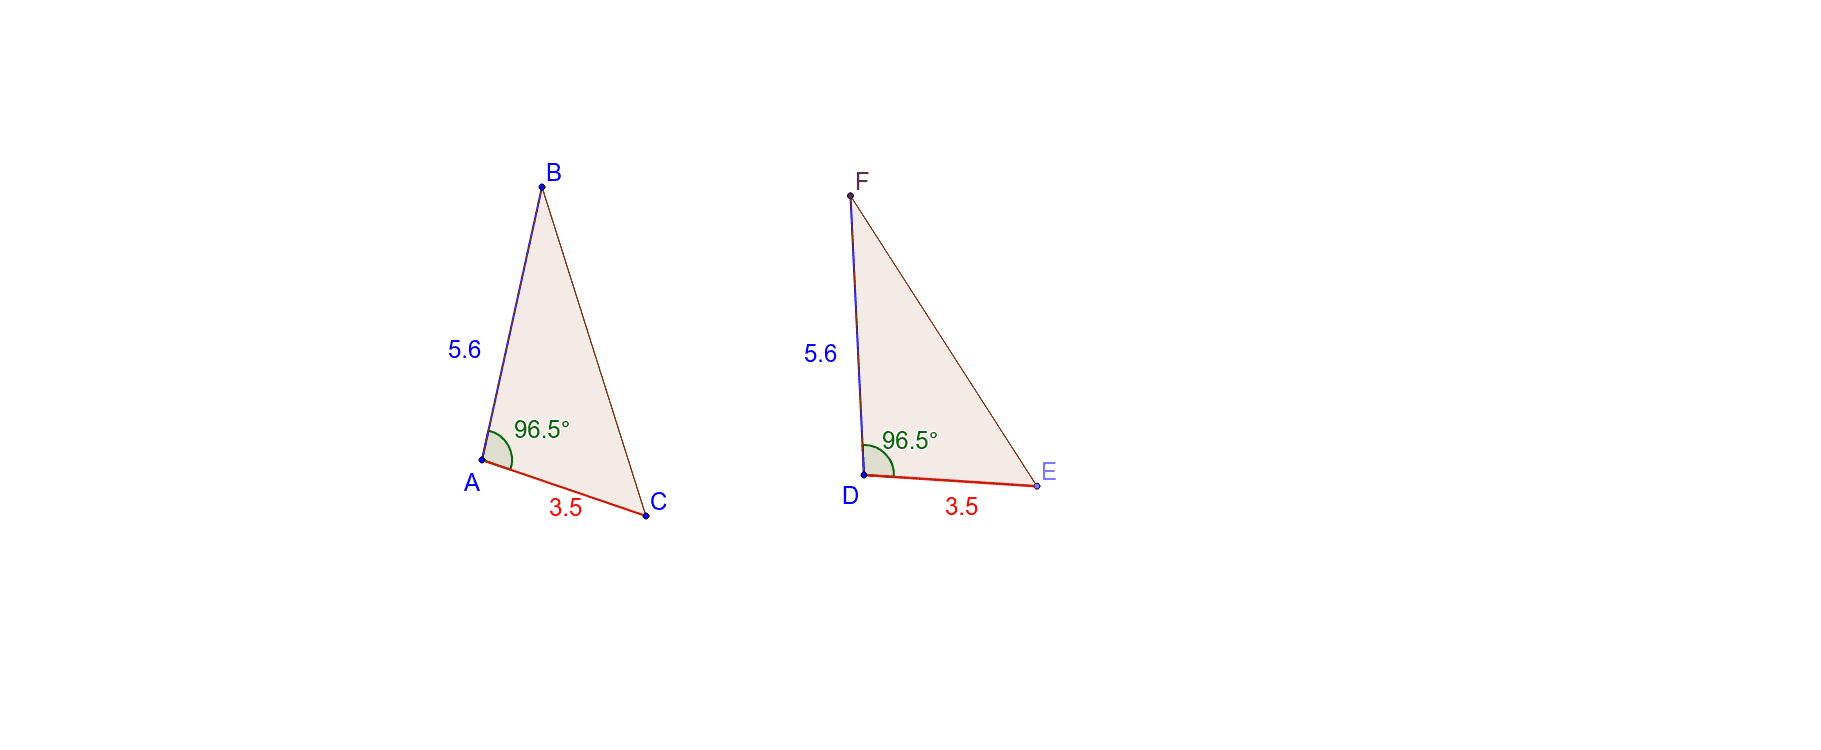 2 corresponding sides of equal length and the same angle between them. Always congruent? Press Enter to start activity